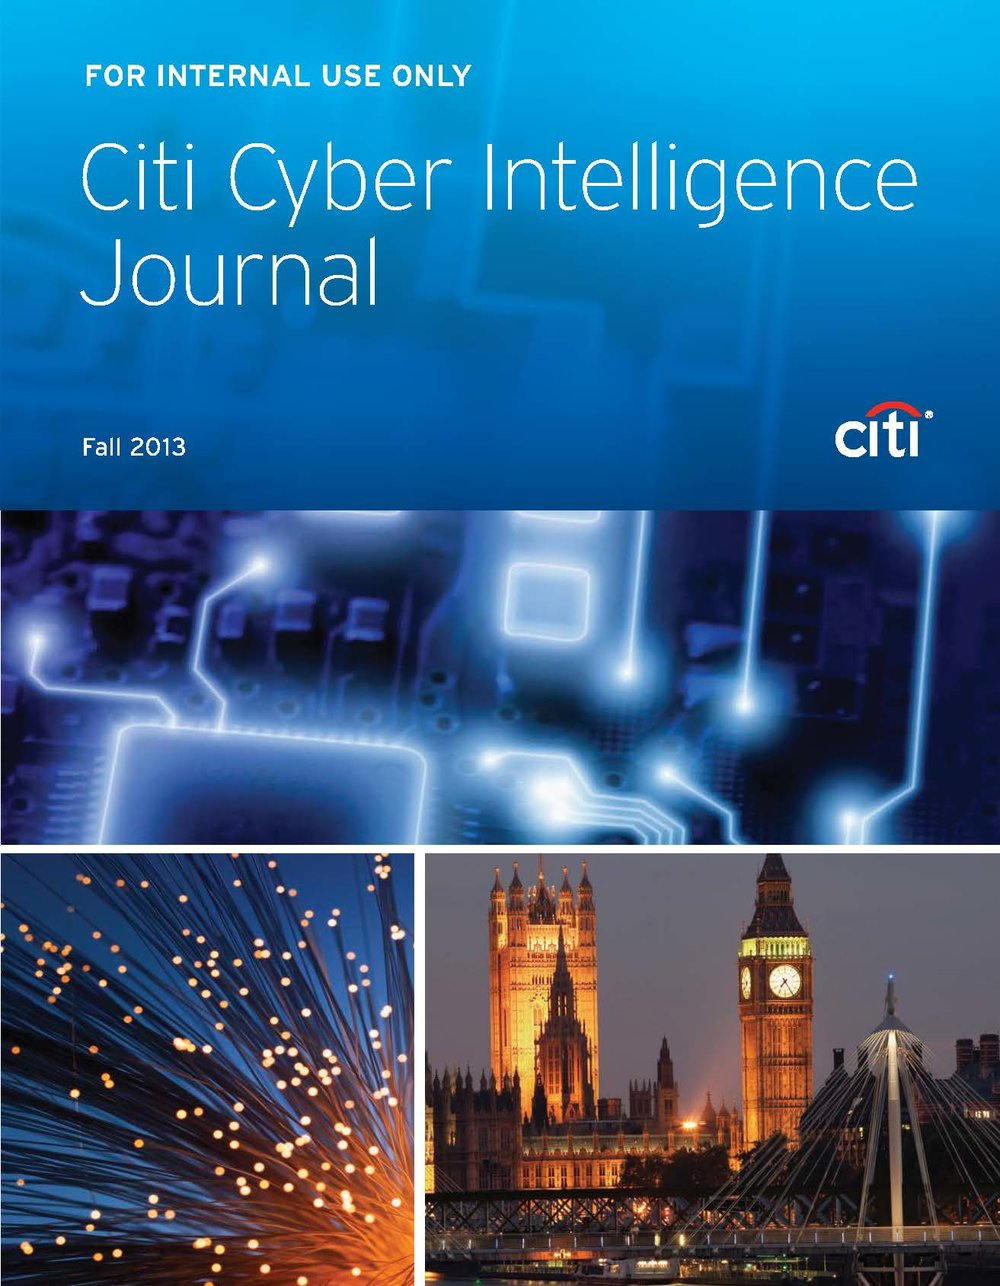 1094887_Citi_Cyber_Intelligence_Journal_FINALPRINT_9.30._sm_Page_001.jpg